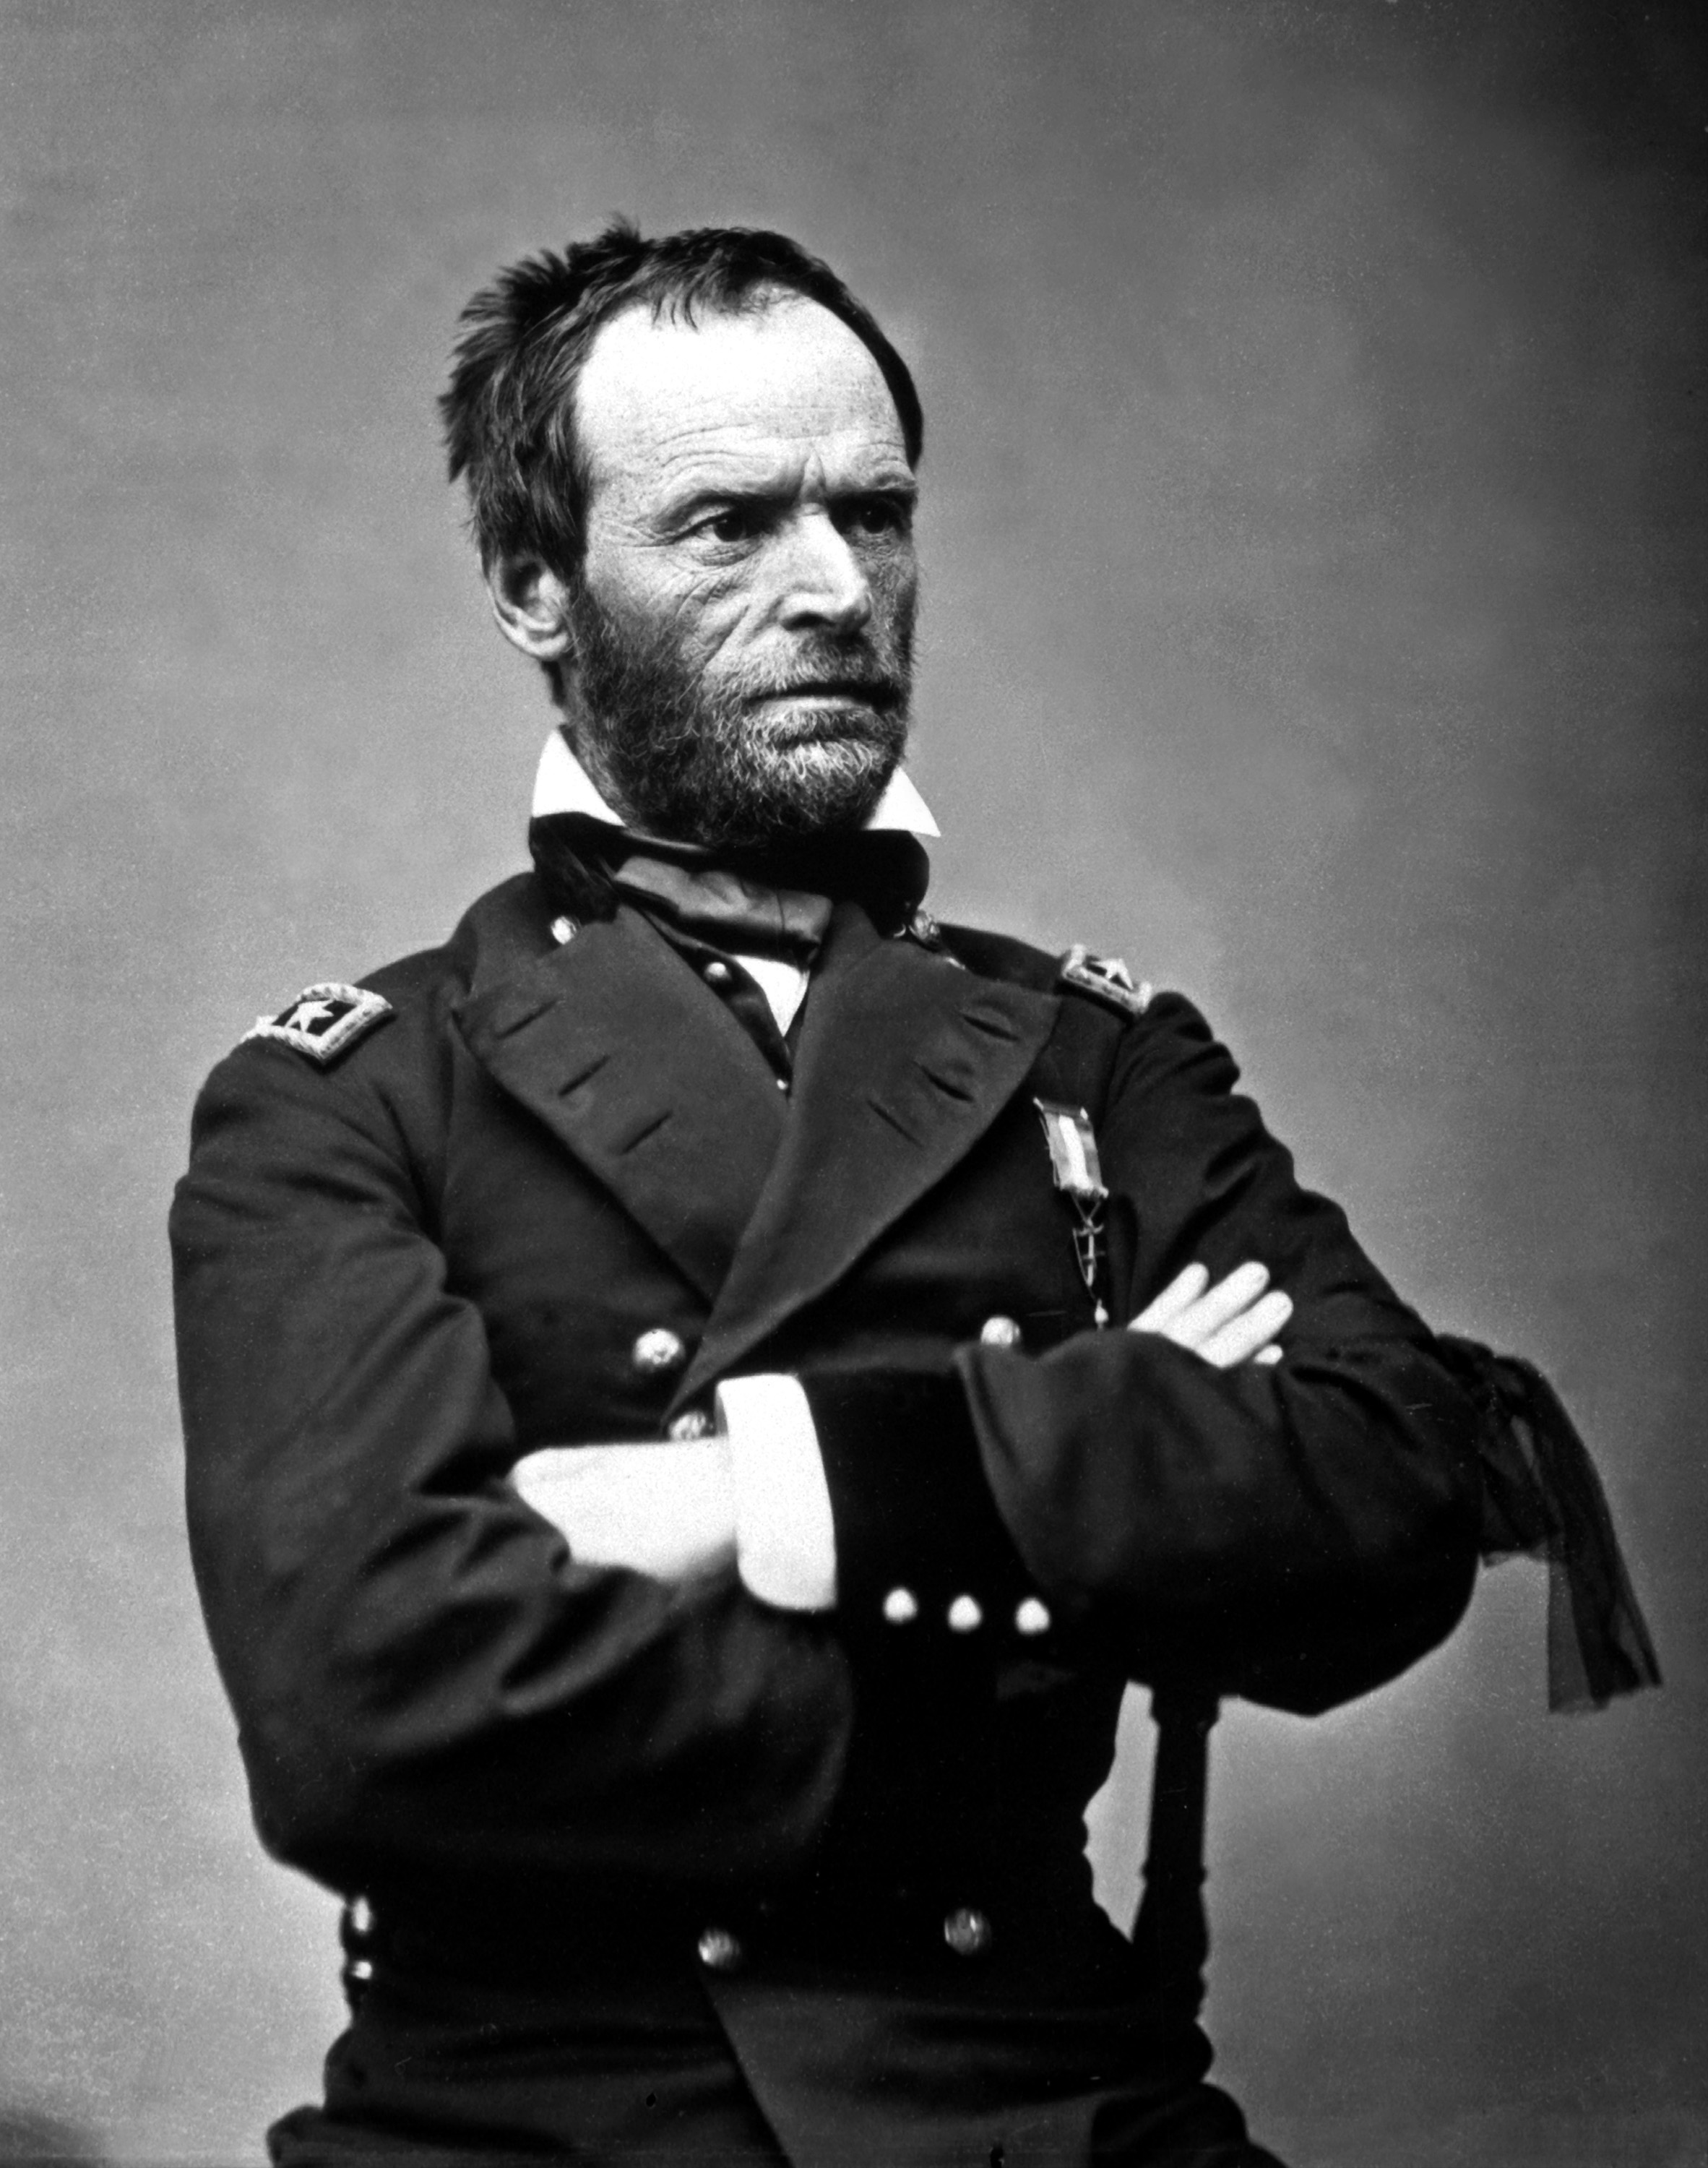 William Tecumseh Sherman: one mean, angry, ragged dude